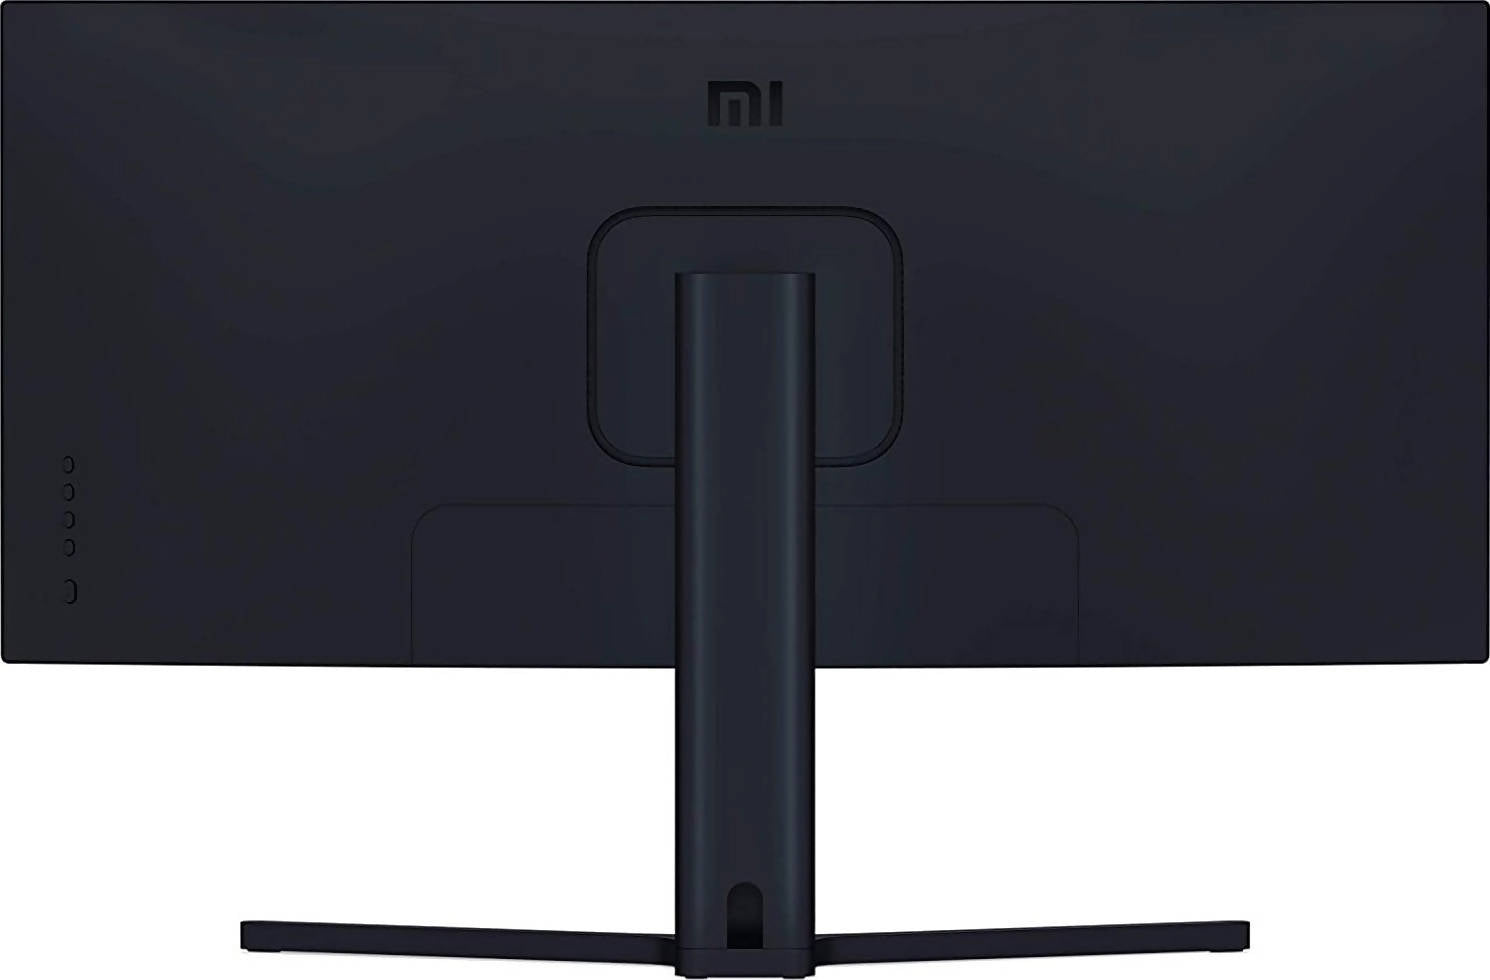 XIAOMI Curved Gaming Monitor 34-Inch 3440 * 1440 WQHD 21:9 Bring Fish Screen 144Hz High Refresh Rate 121% sRGB 1500R Curvature - 2071MALL